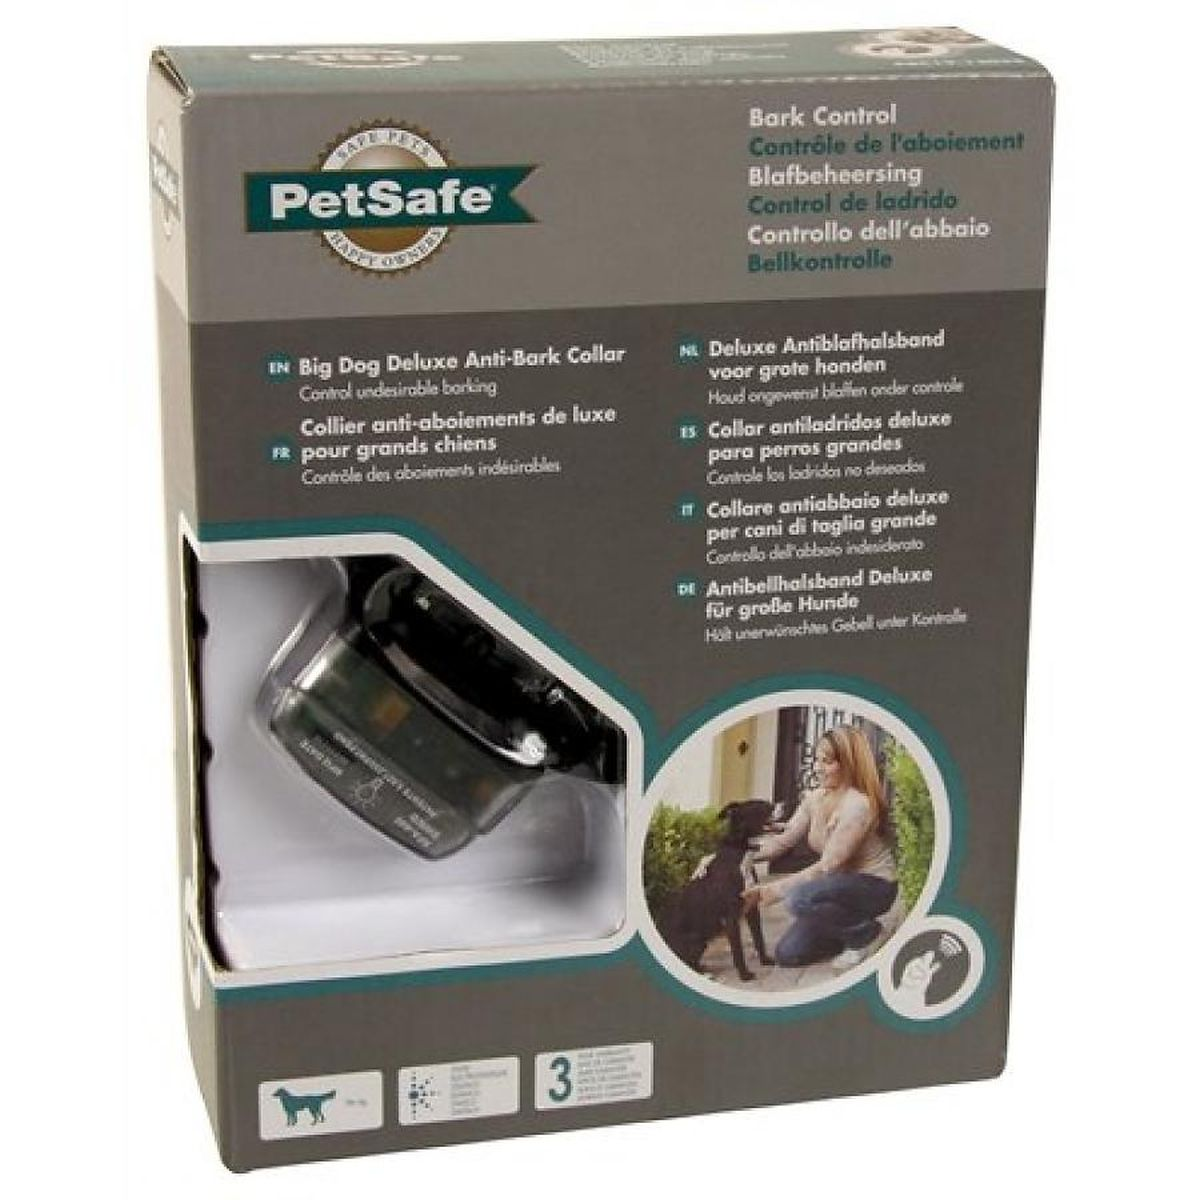 PS DELUXE ANTIBLAFB GROTE HOND 00001